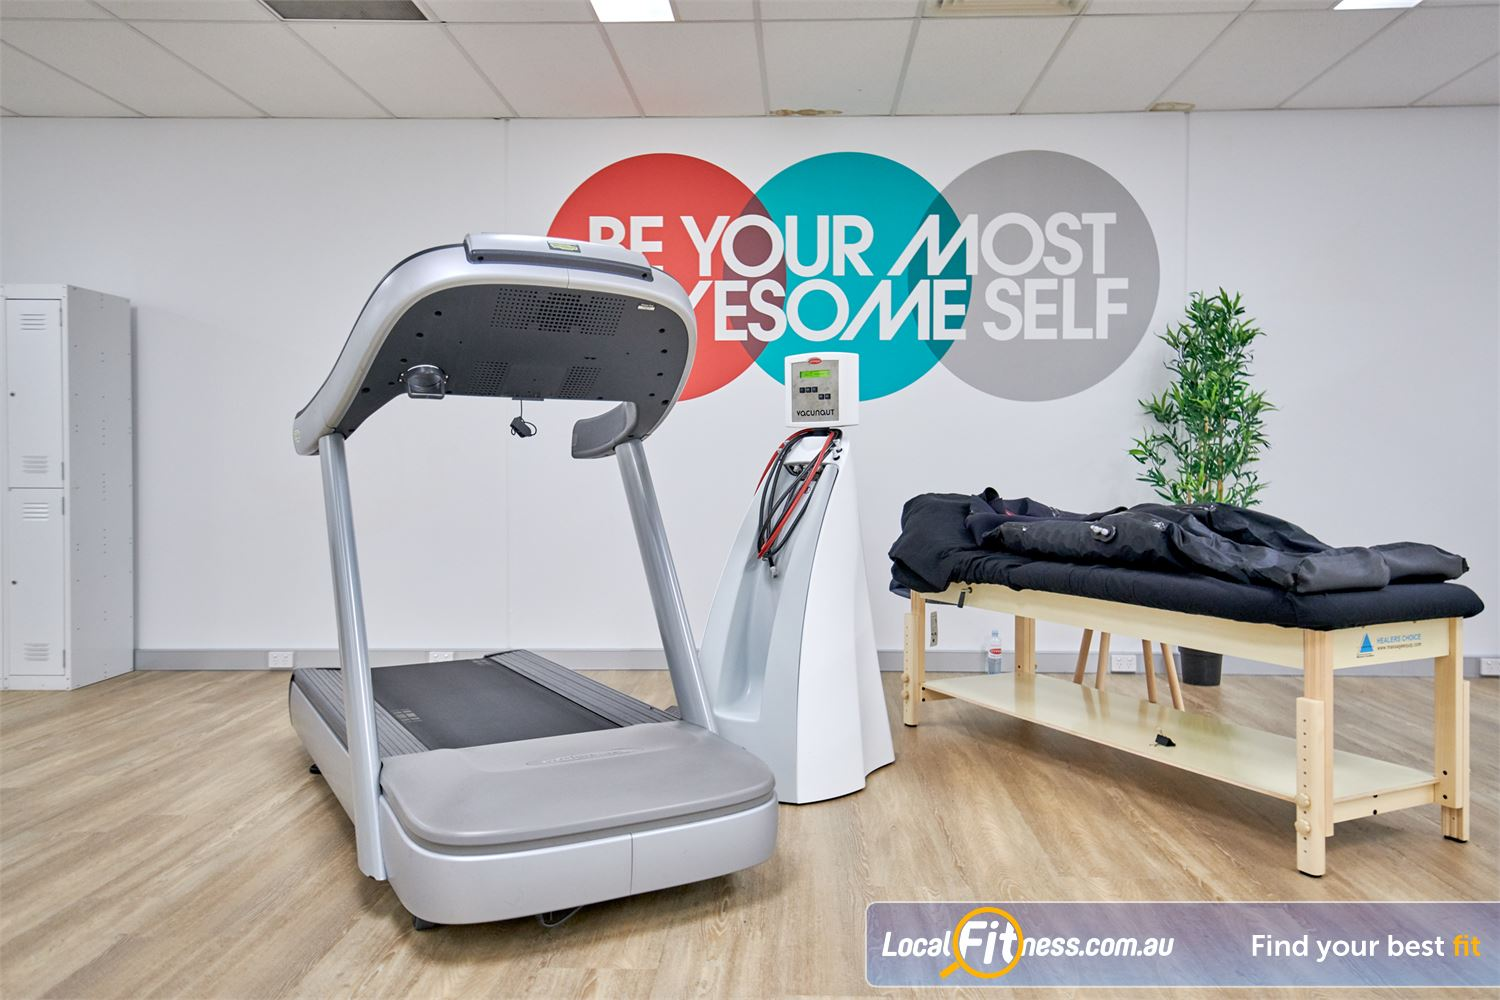 HYPOXI Weight Loss Near Canterbury For women, HYPOXI is great for Camberwell cellulite reduction.